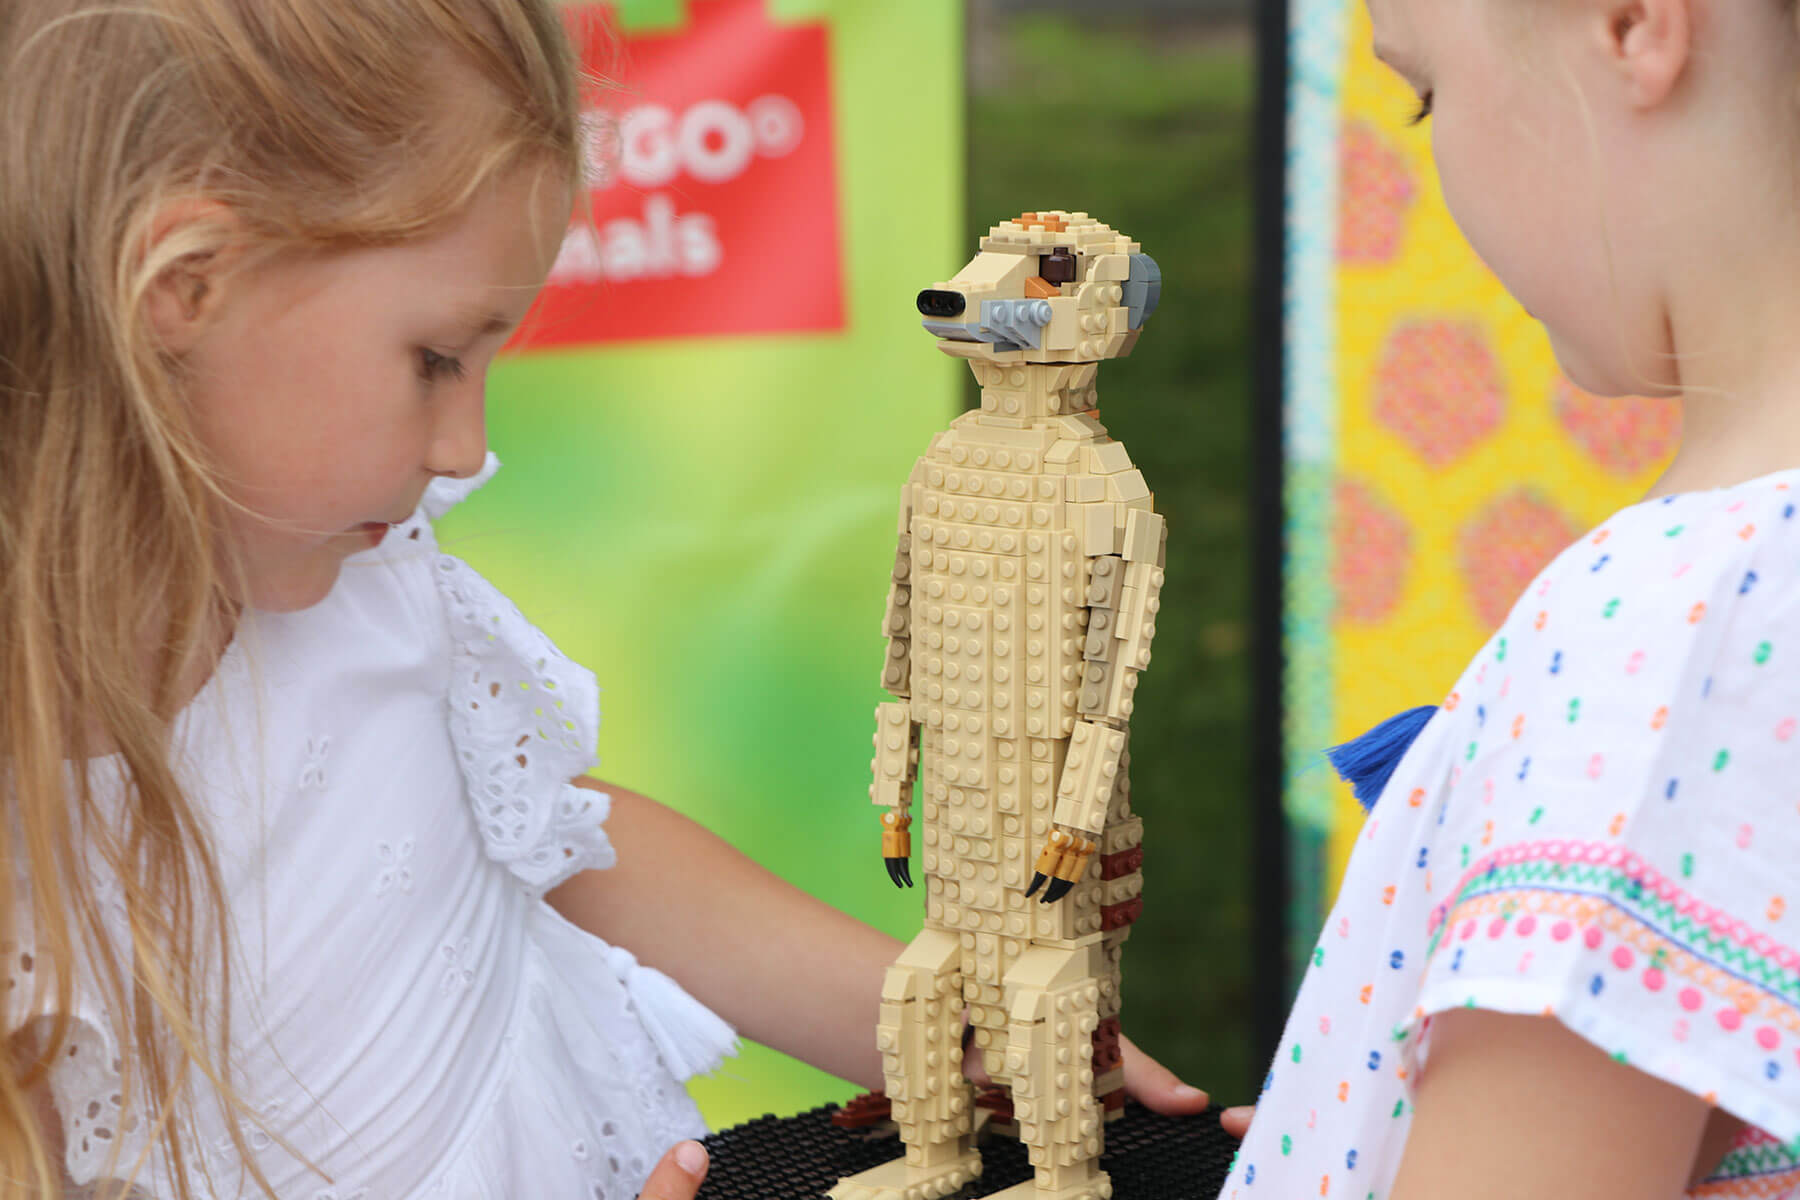 Two children looking at a Meerkat made out of Lego.